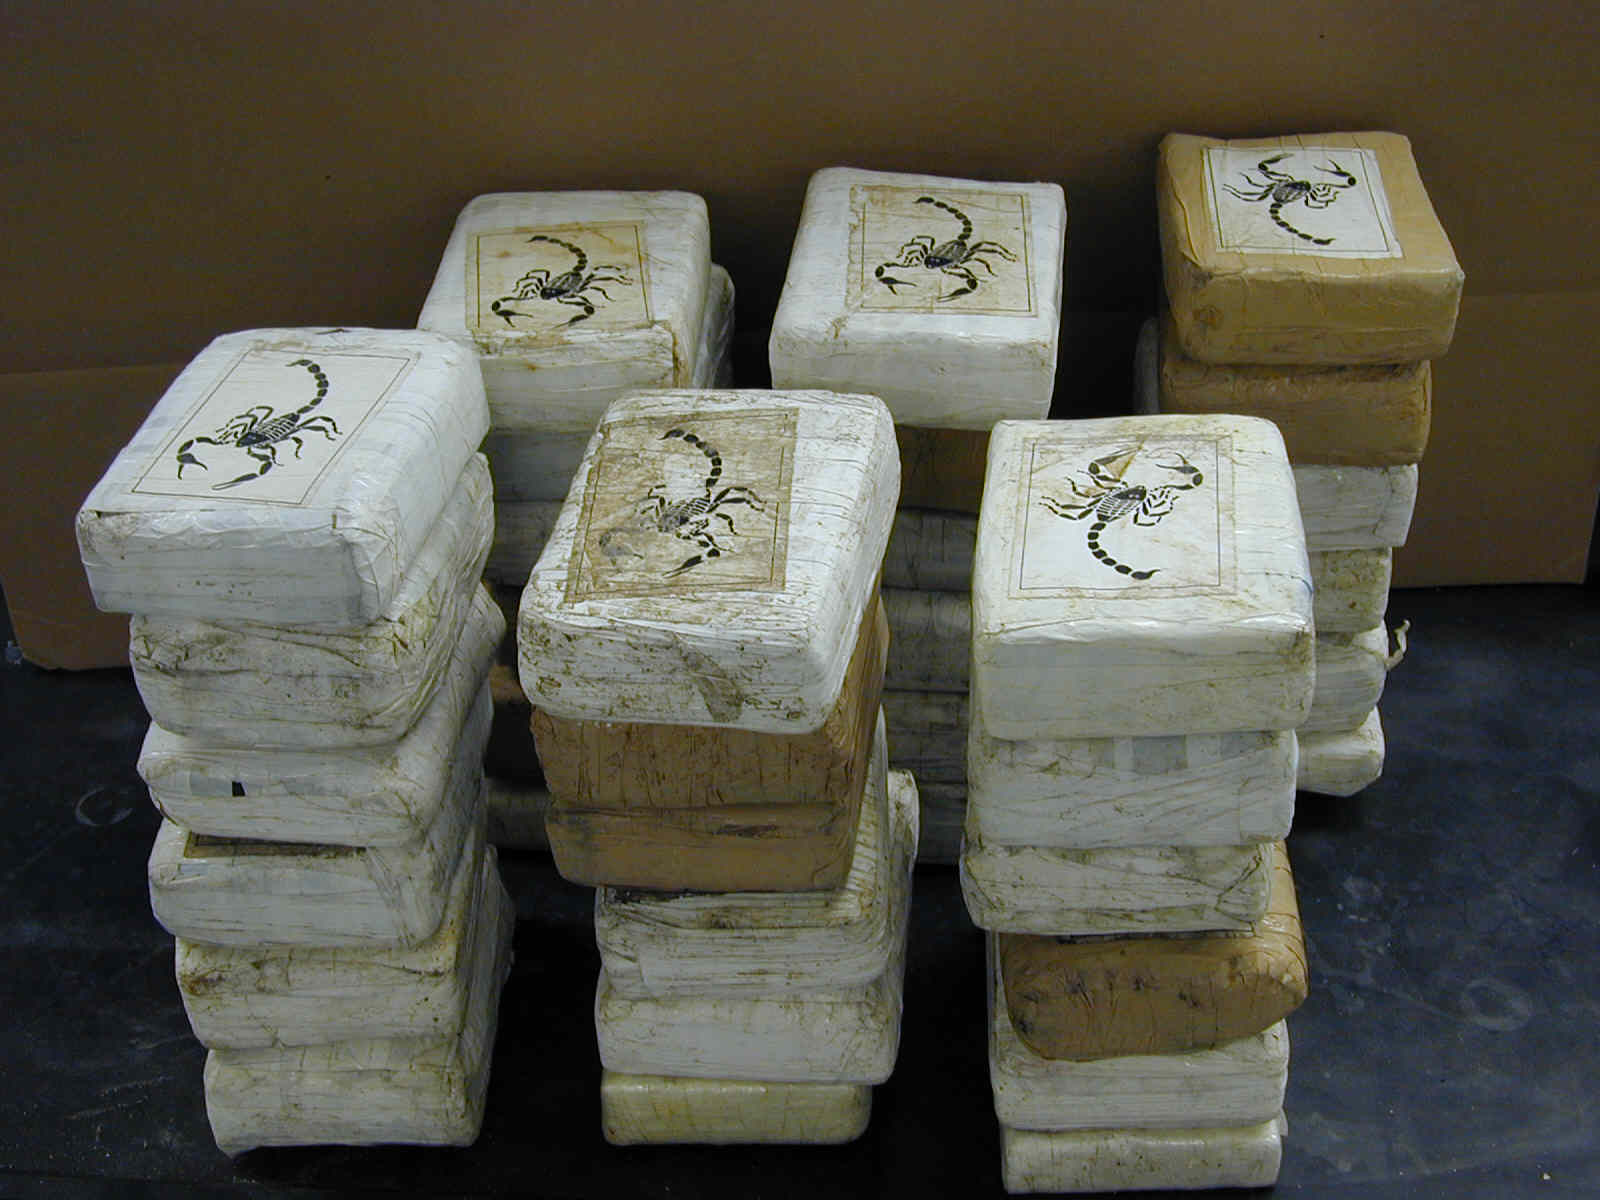 Majority of U.S. Cocaine Supply Cut with Veterinary Deworming Drug